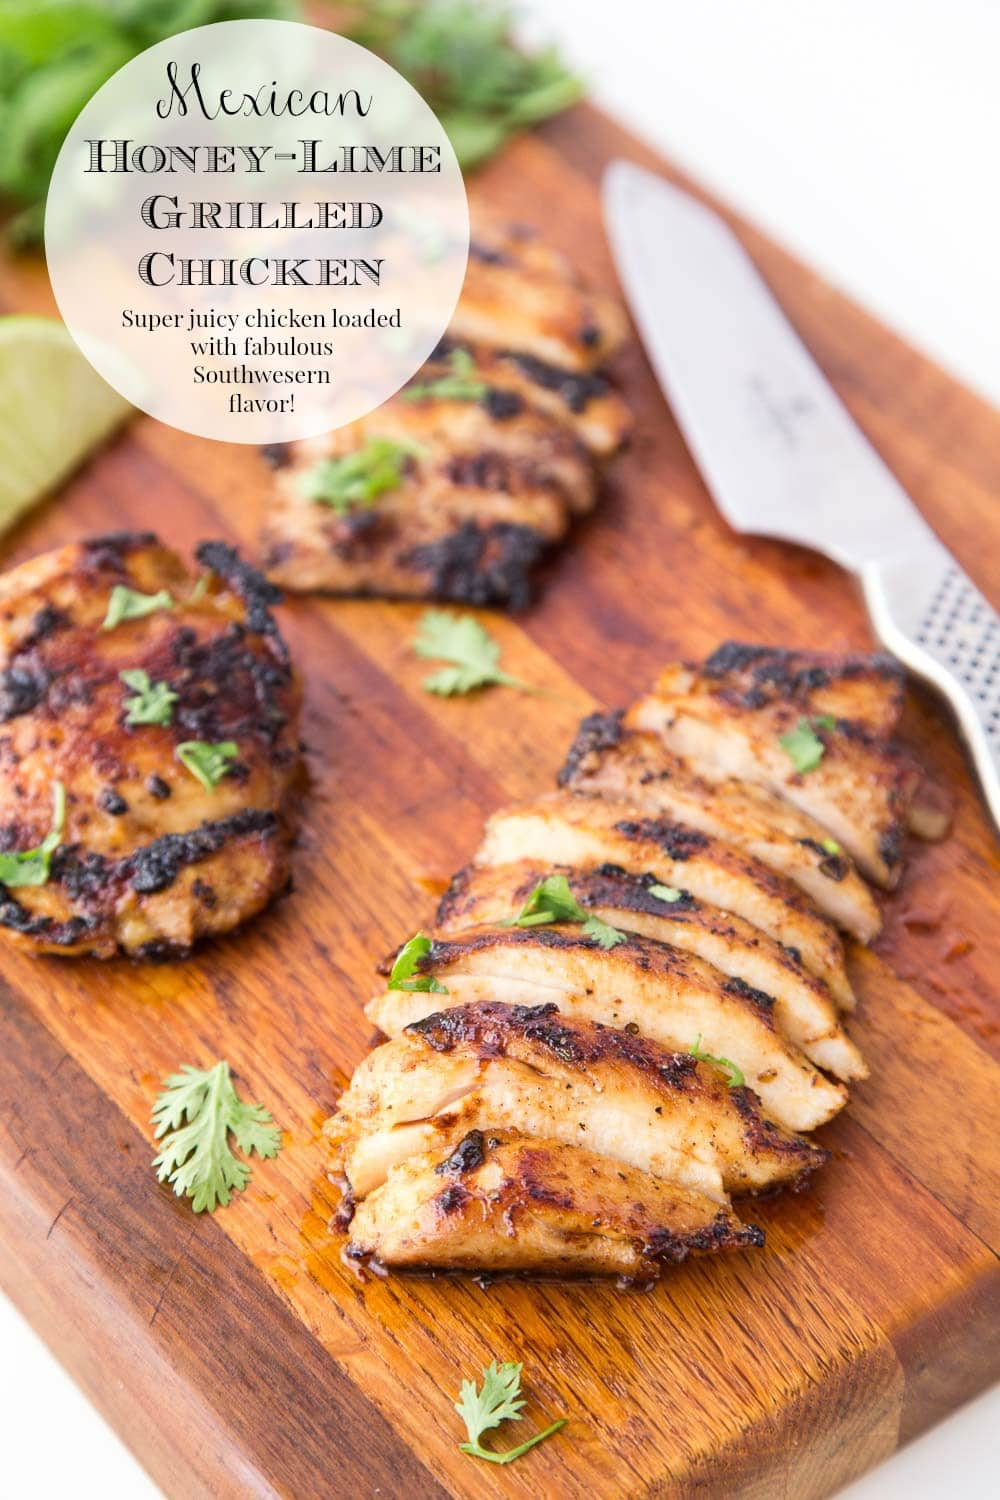 No worries about dry chicken! This Mexican Honey Lime Grilled Chicken stays moist, tender and full of fabulous Southwest-inspired flavor! #mexicanchicken, #grilledchicken, #honeylimechicken